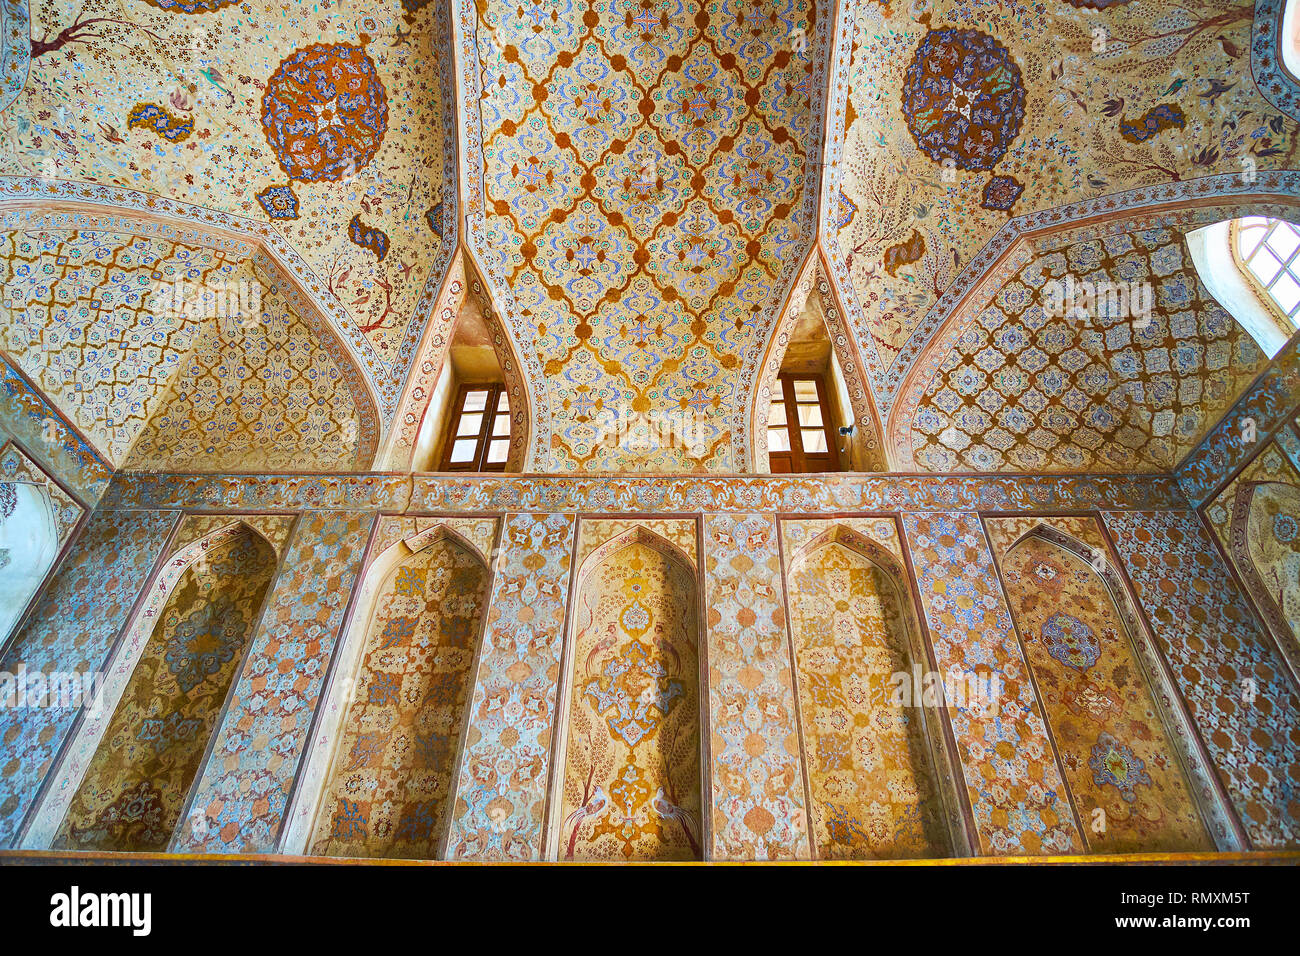 ISFAHAN, IRAN - OCTOBER 21, 2017: Decorative elements of Reception hall of medieval Ali Qapu Palace with complex walls and ceiling, covered with rich  Stock Photo